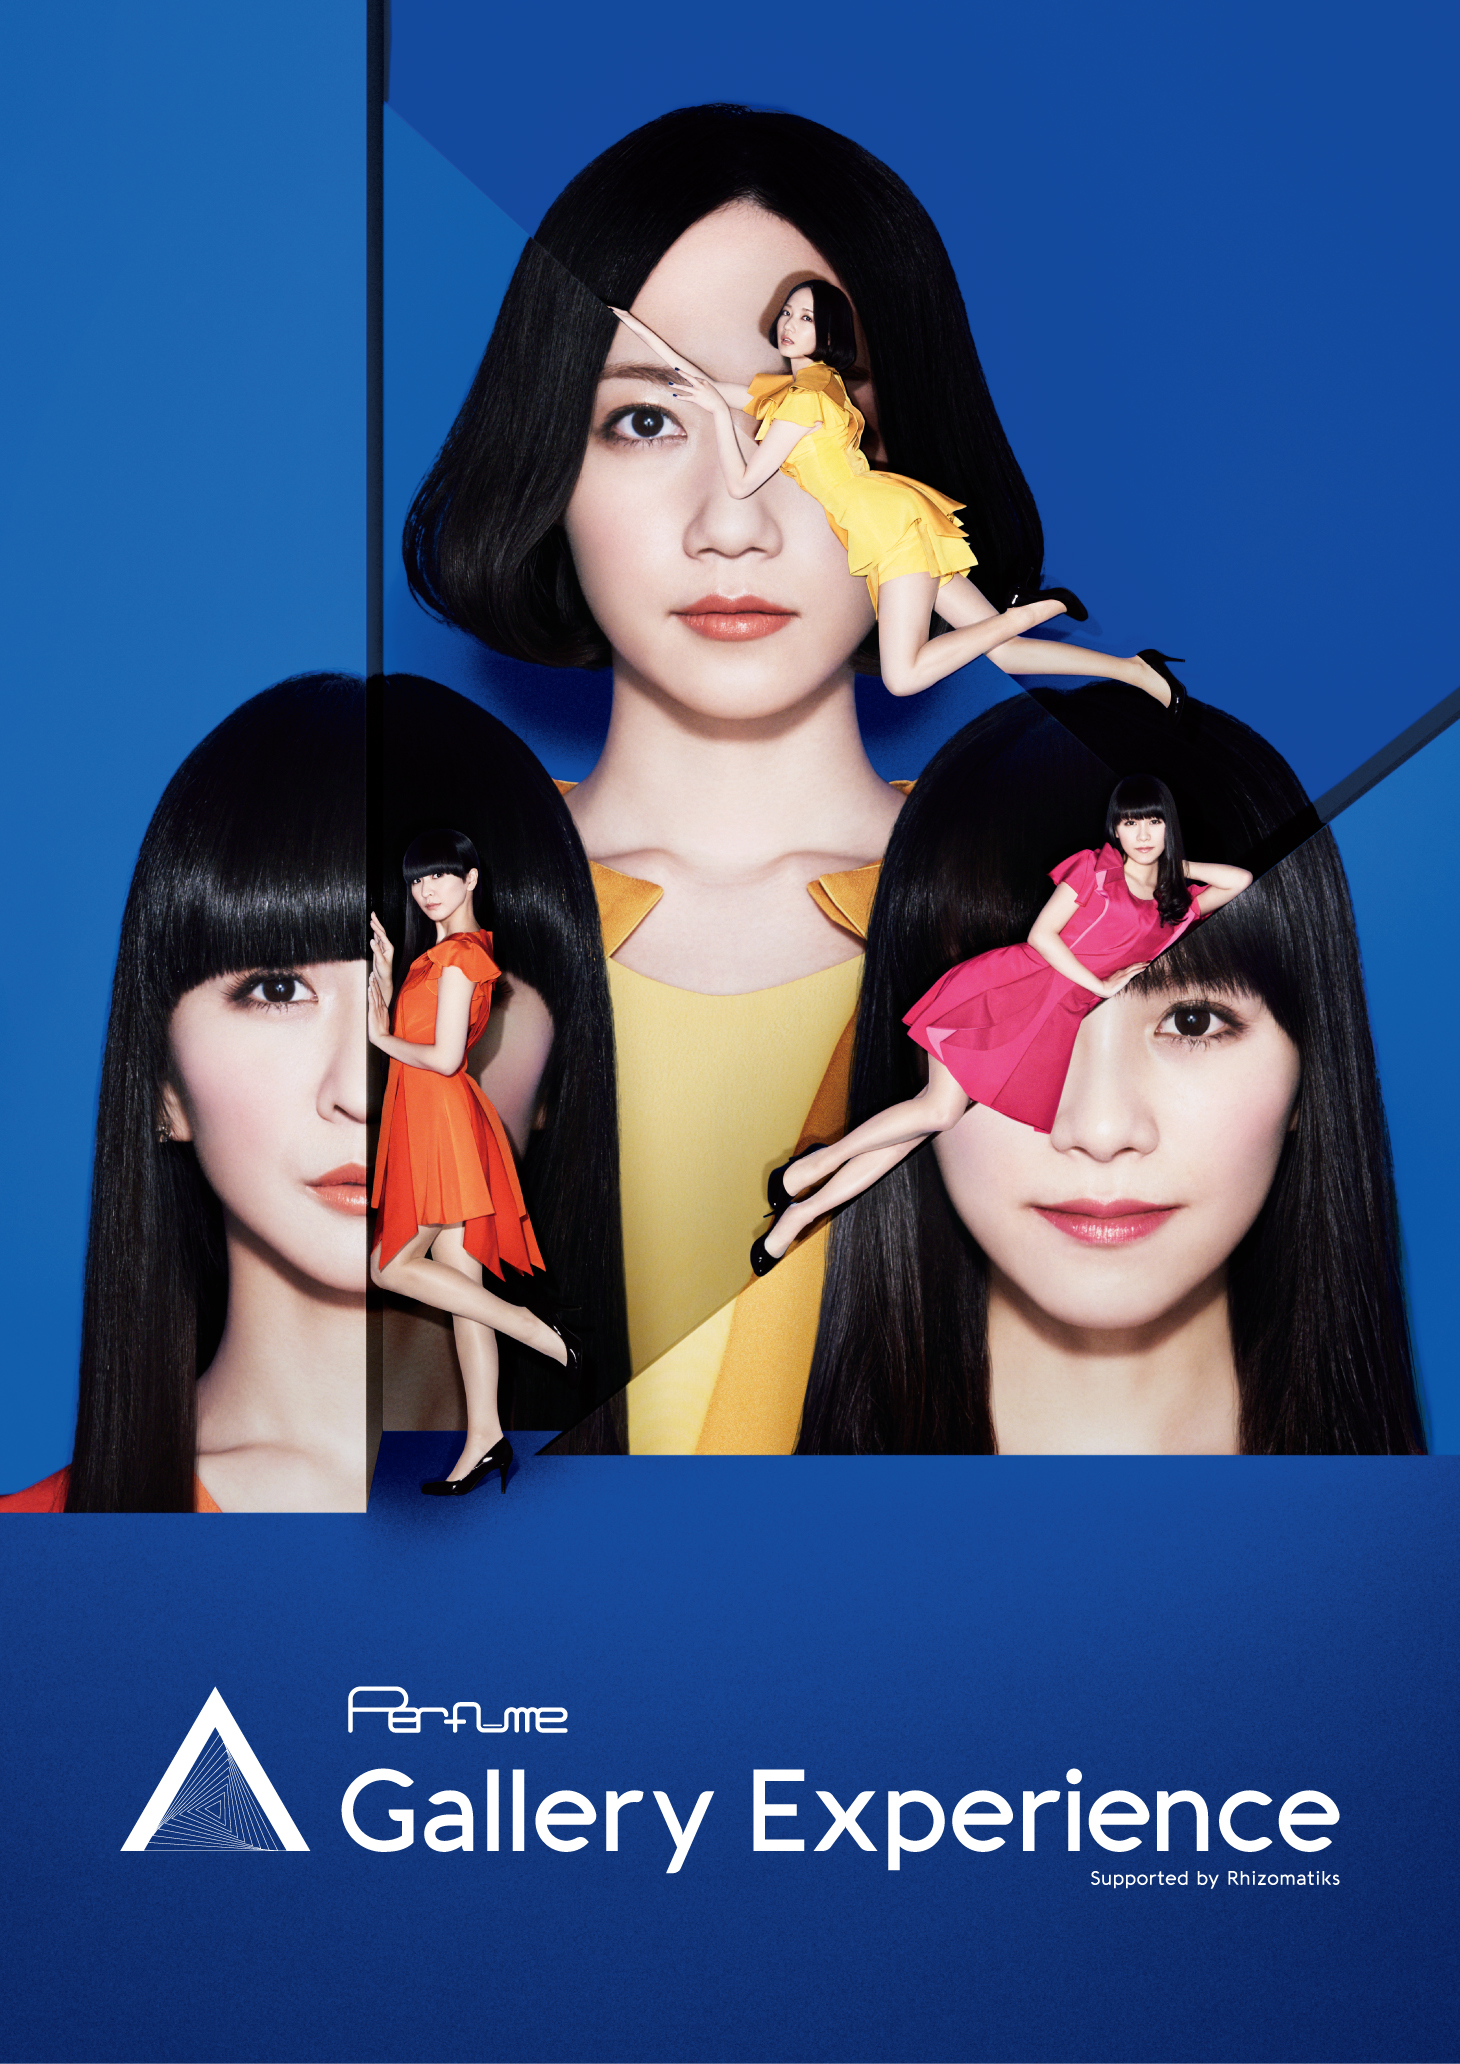 Perfume_Gallery_Experience_poster